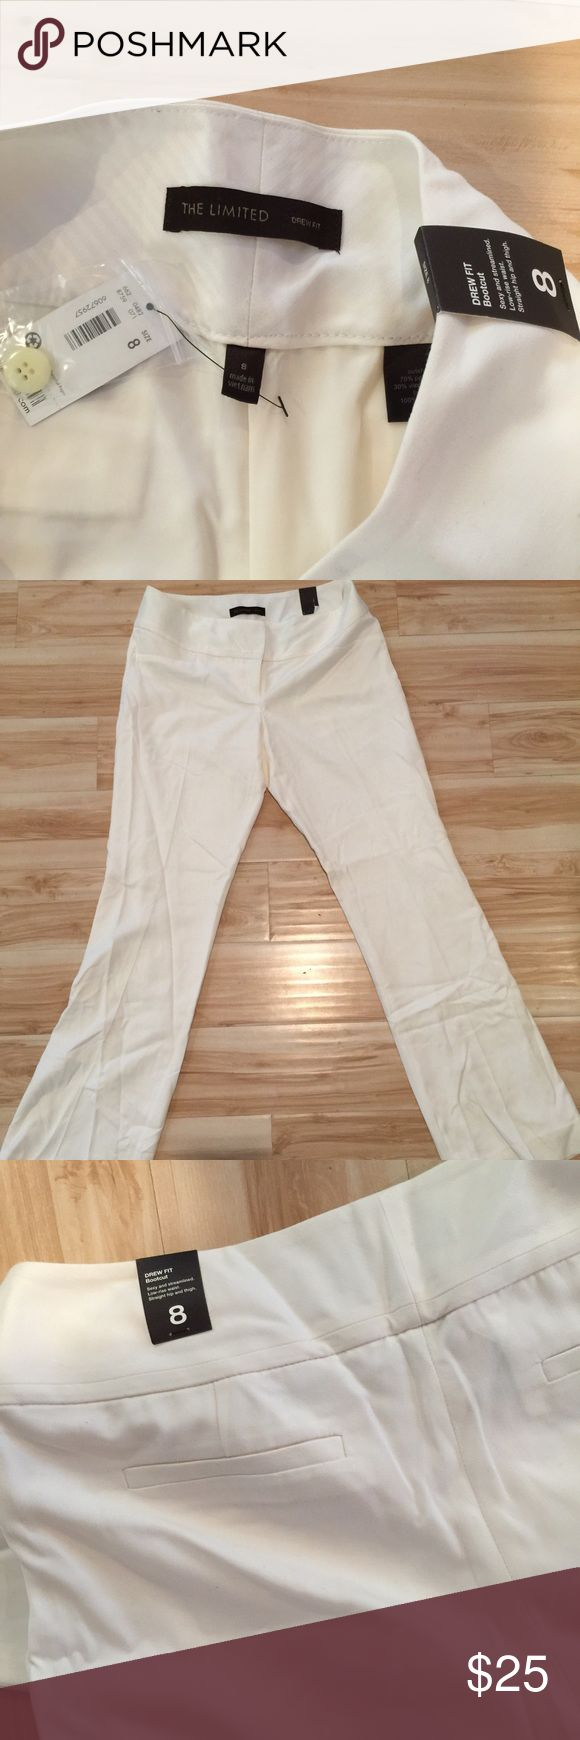 NWT The Limited Winter White Slacks Never worn, Drew style, lined, winter white slacks. The Limited Pants Boot Cut & Flare